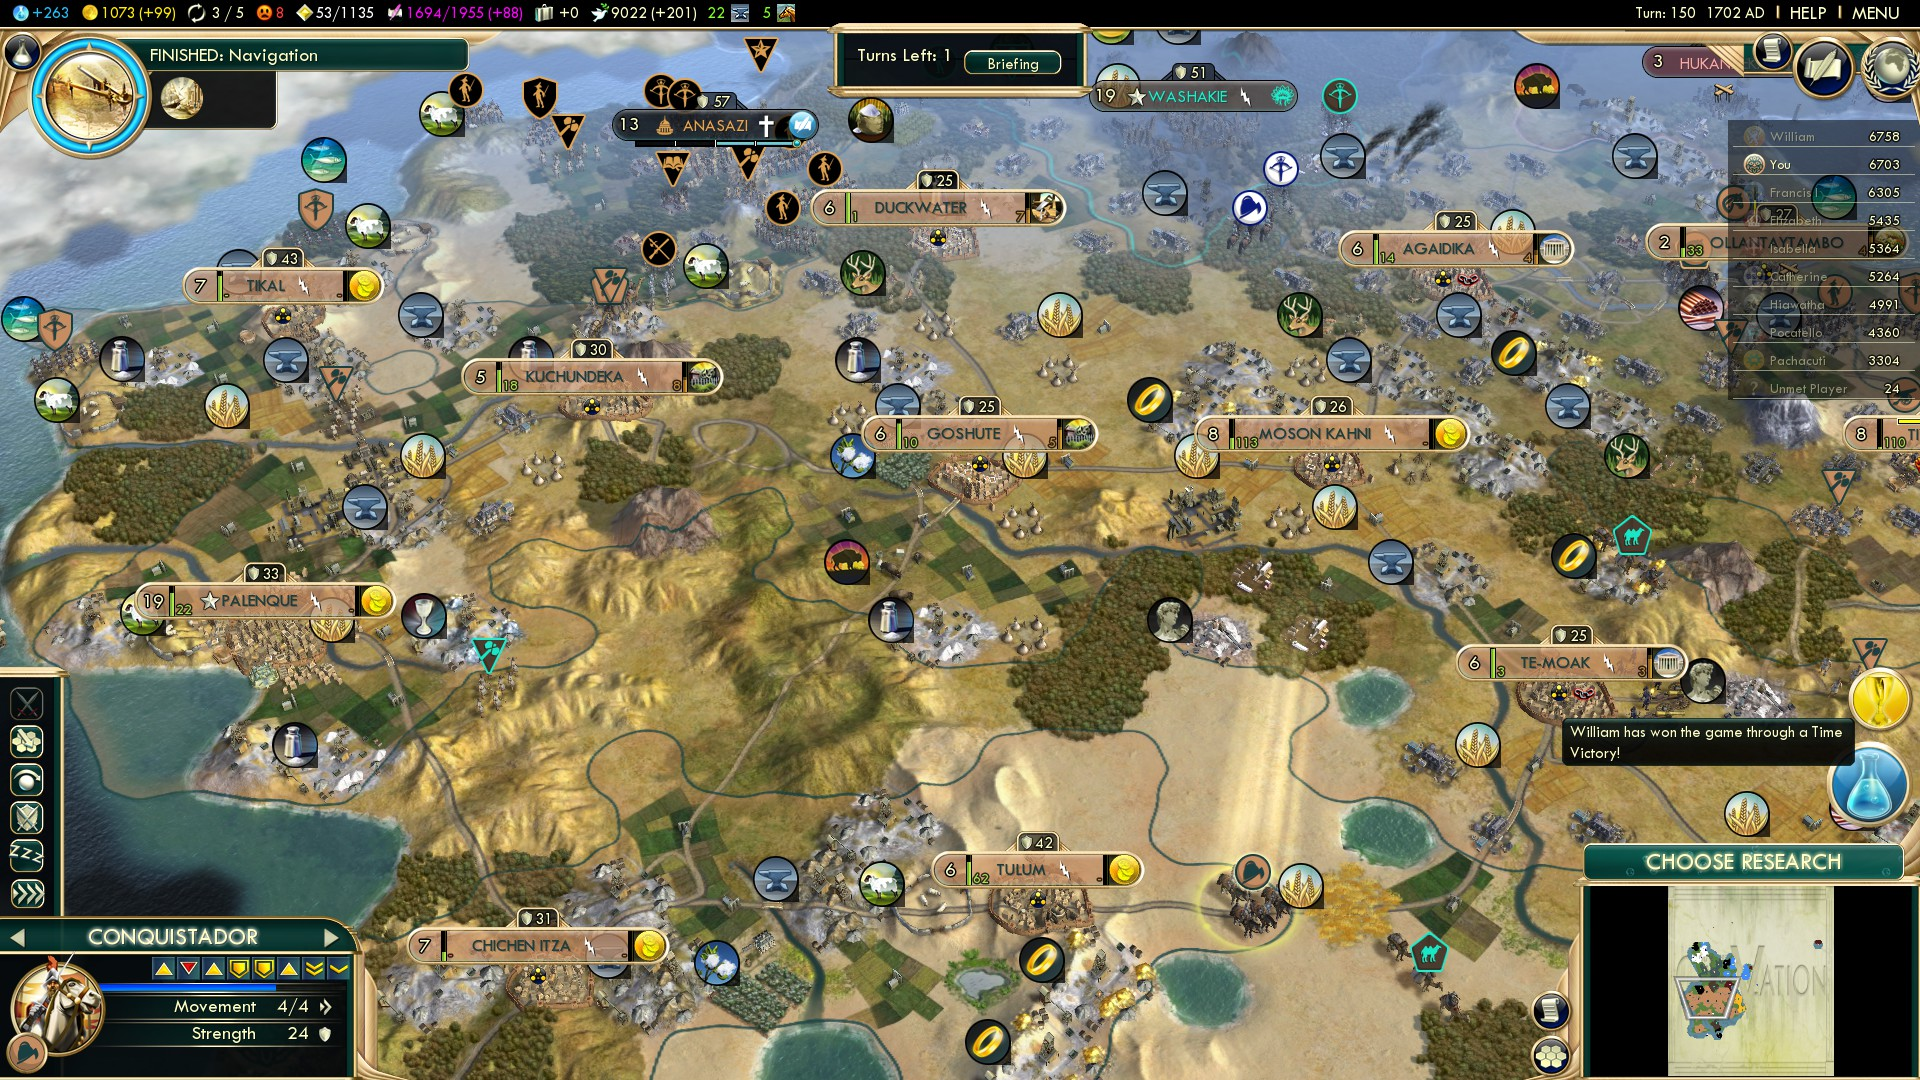 Conquest of the New World Mayan Strategy (Deity)